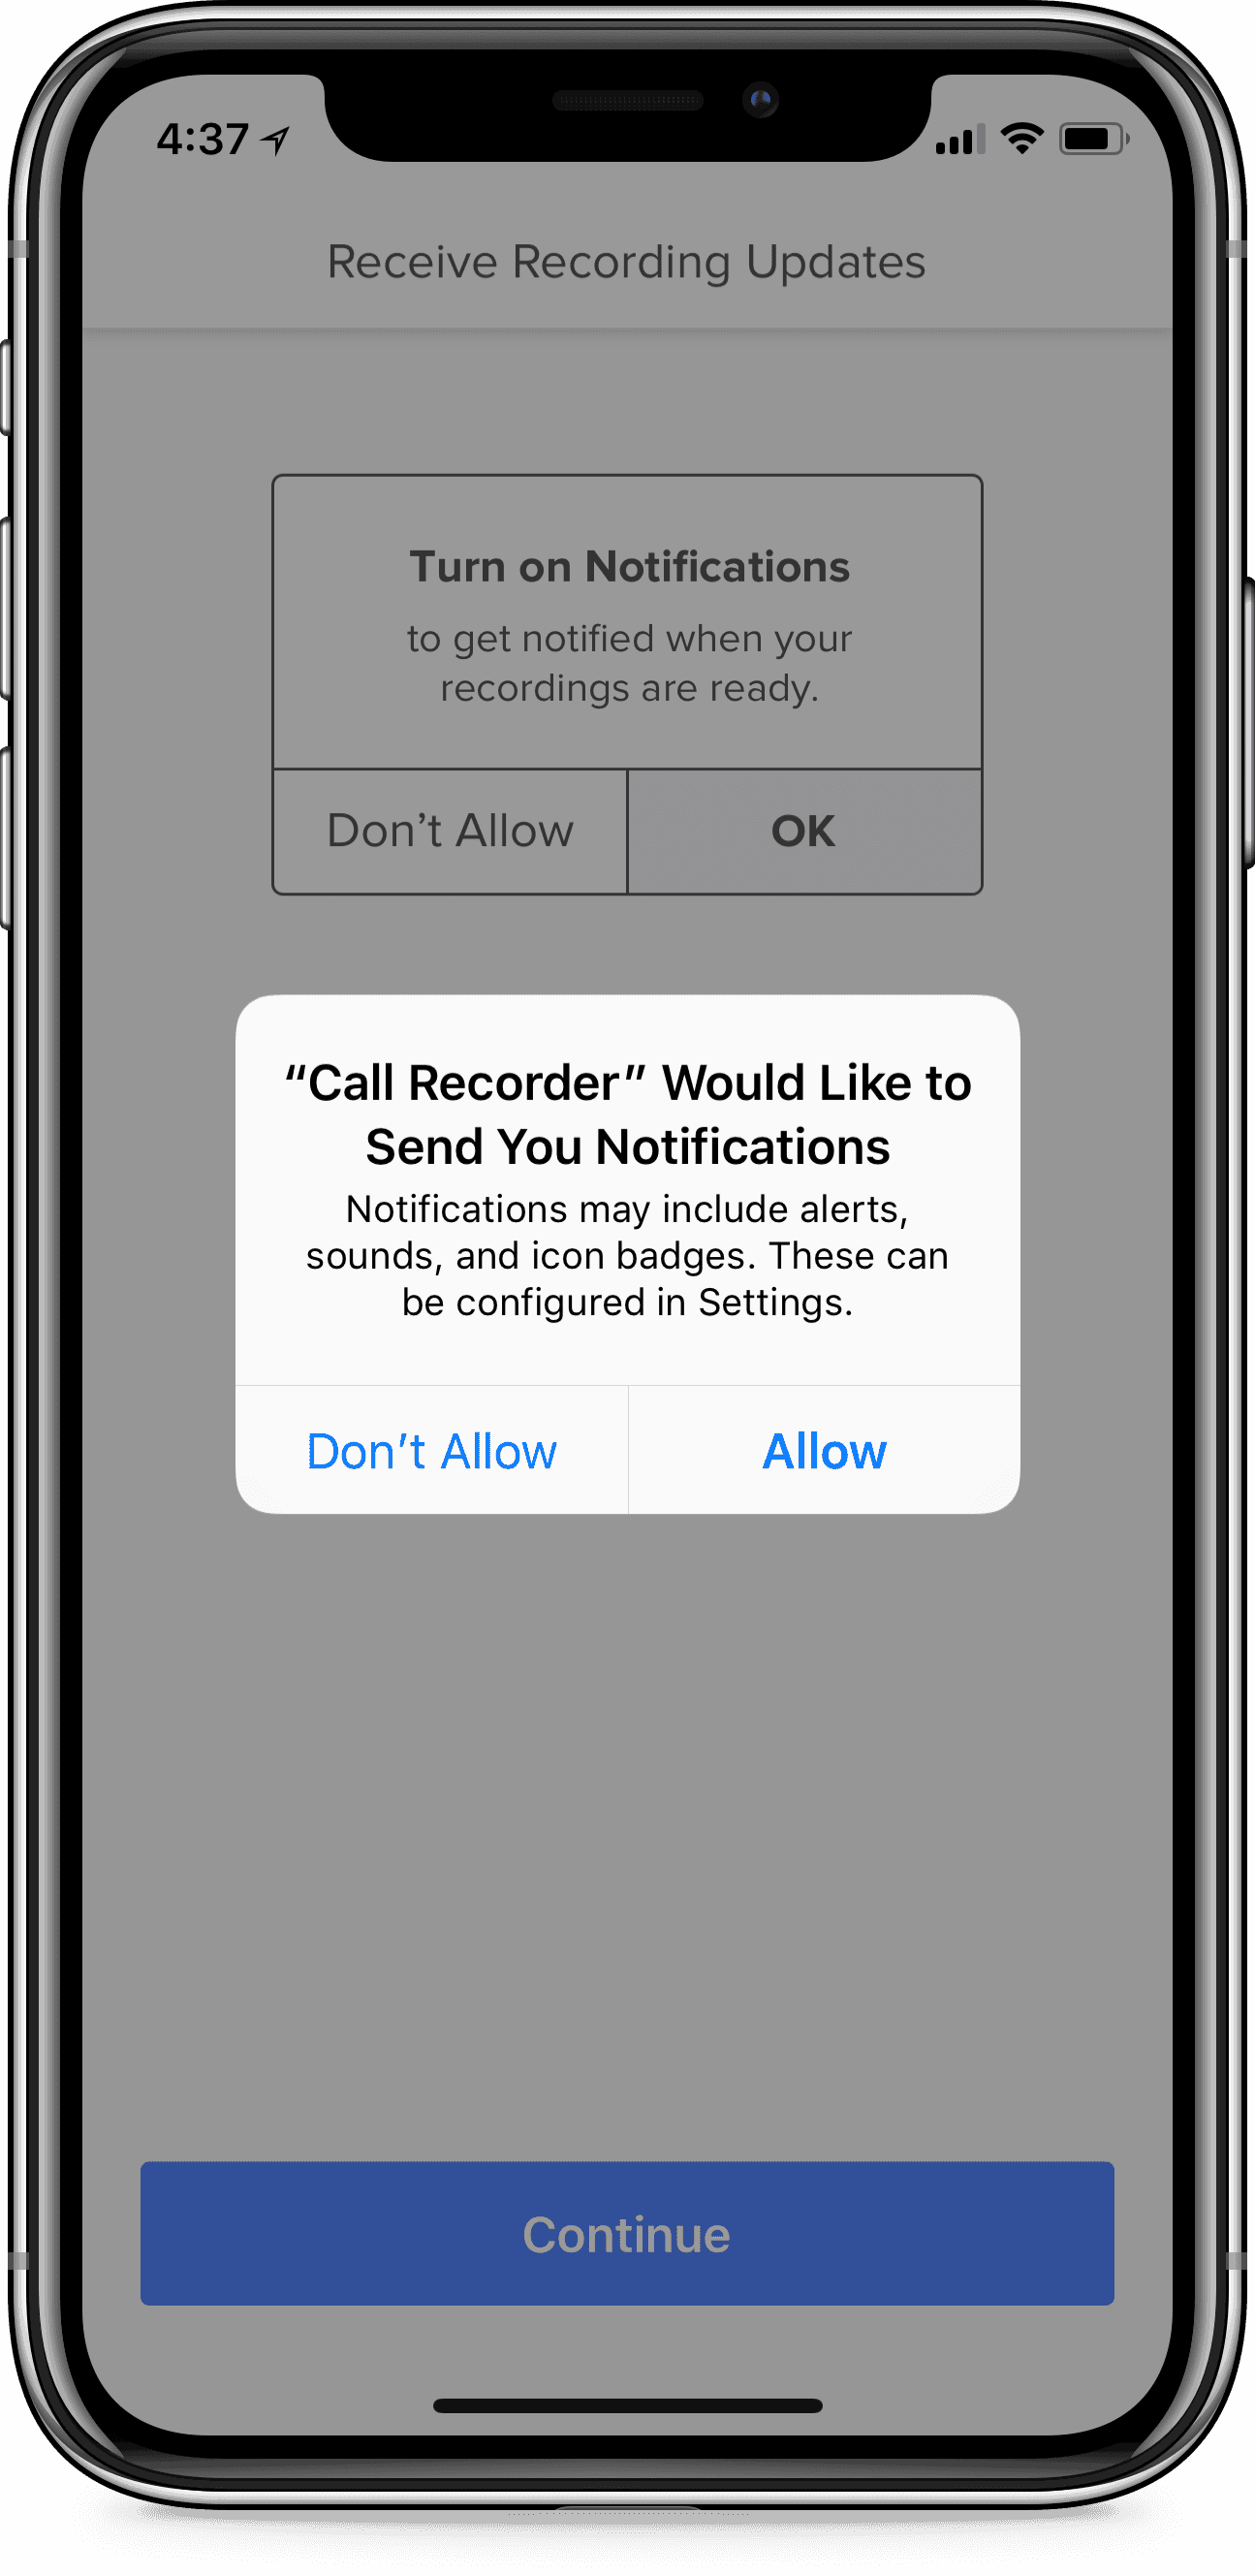 iPhone prompting request of Call Recorder would like to send you notifications